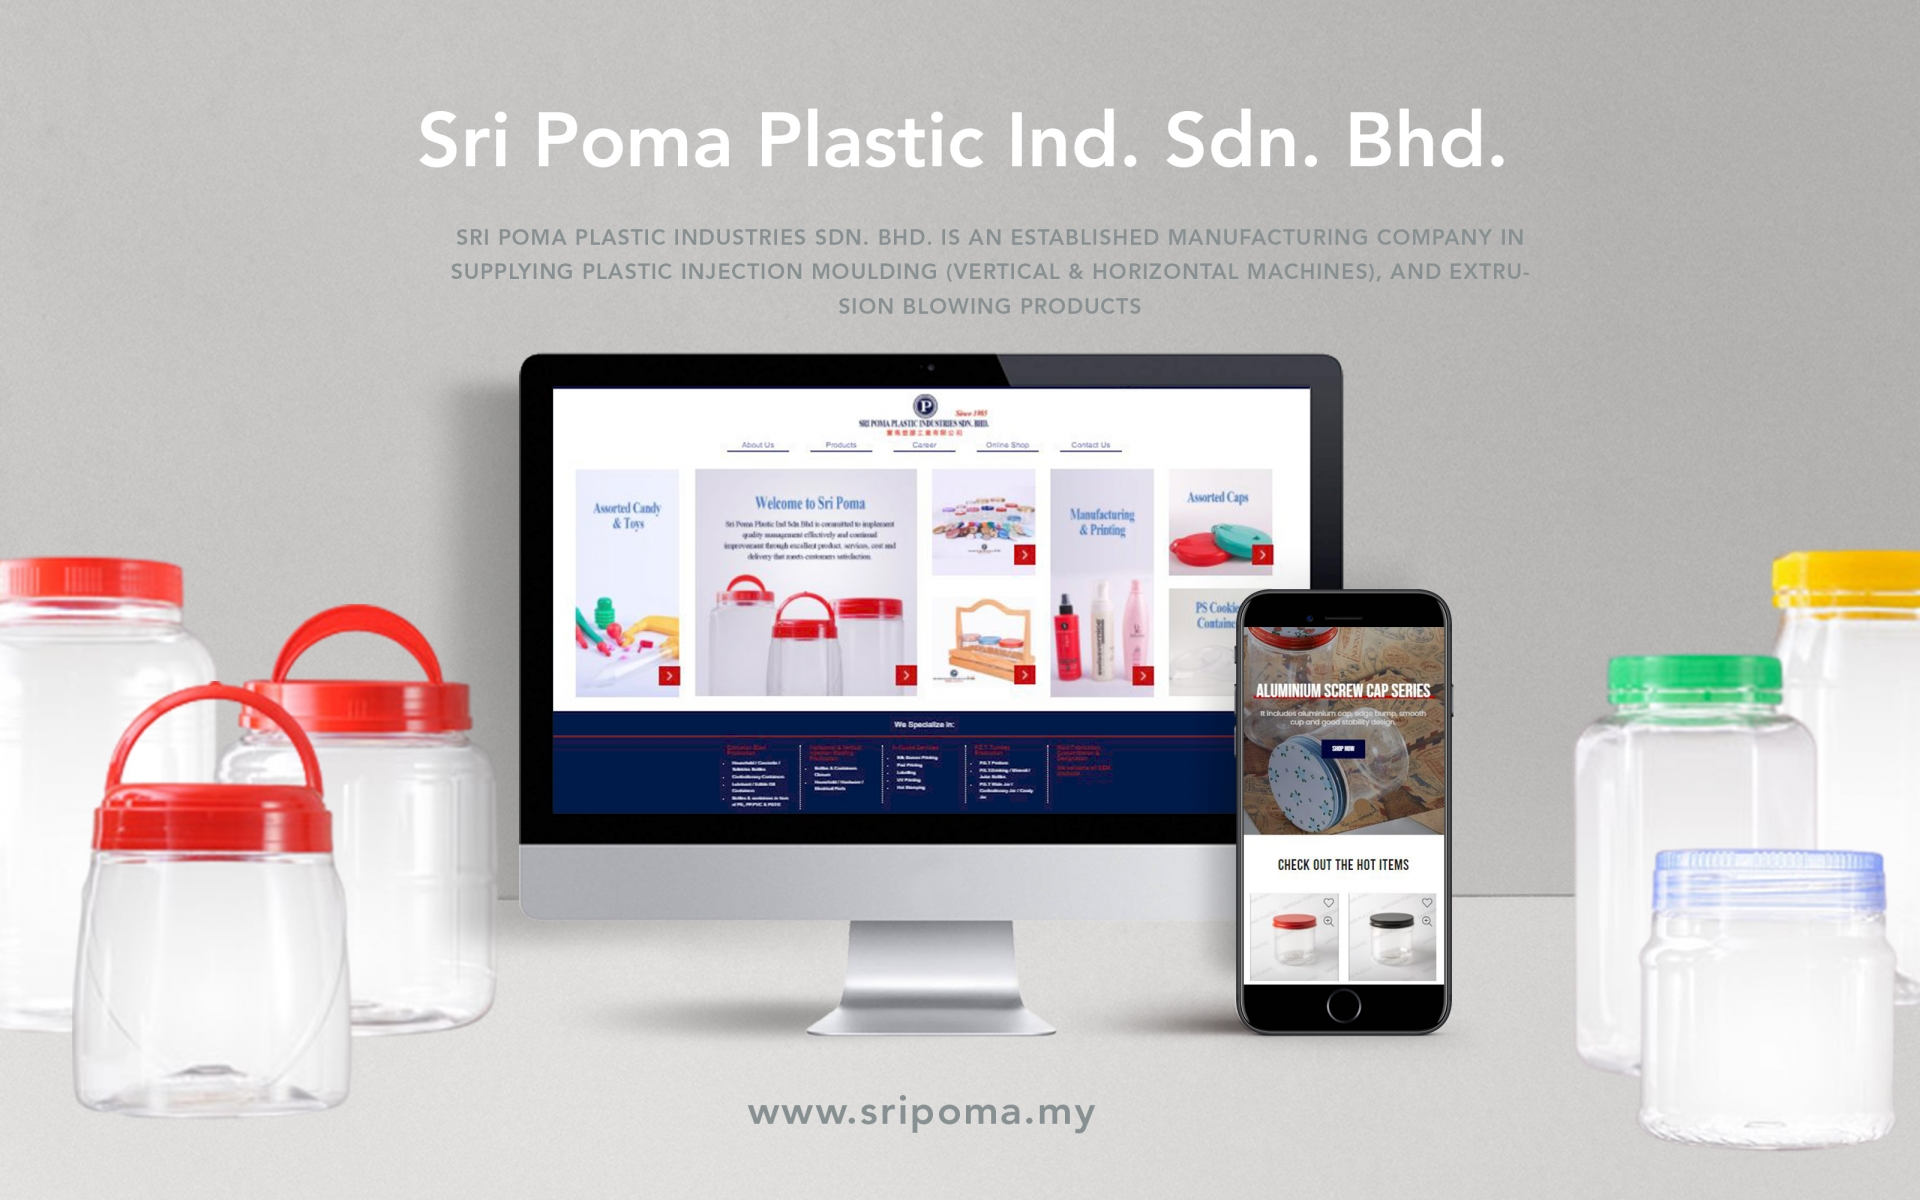 "<a href=""http://welcome.sripoma.com"" target=""_blank"">Sri Ploma Plastic Industries Sdn. Bhd.</a>"